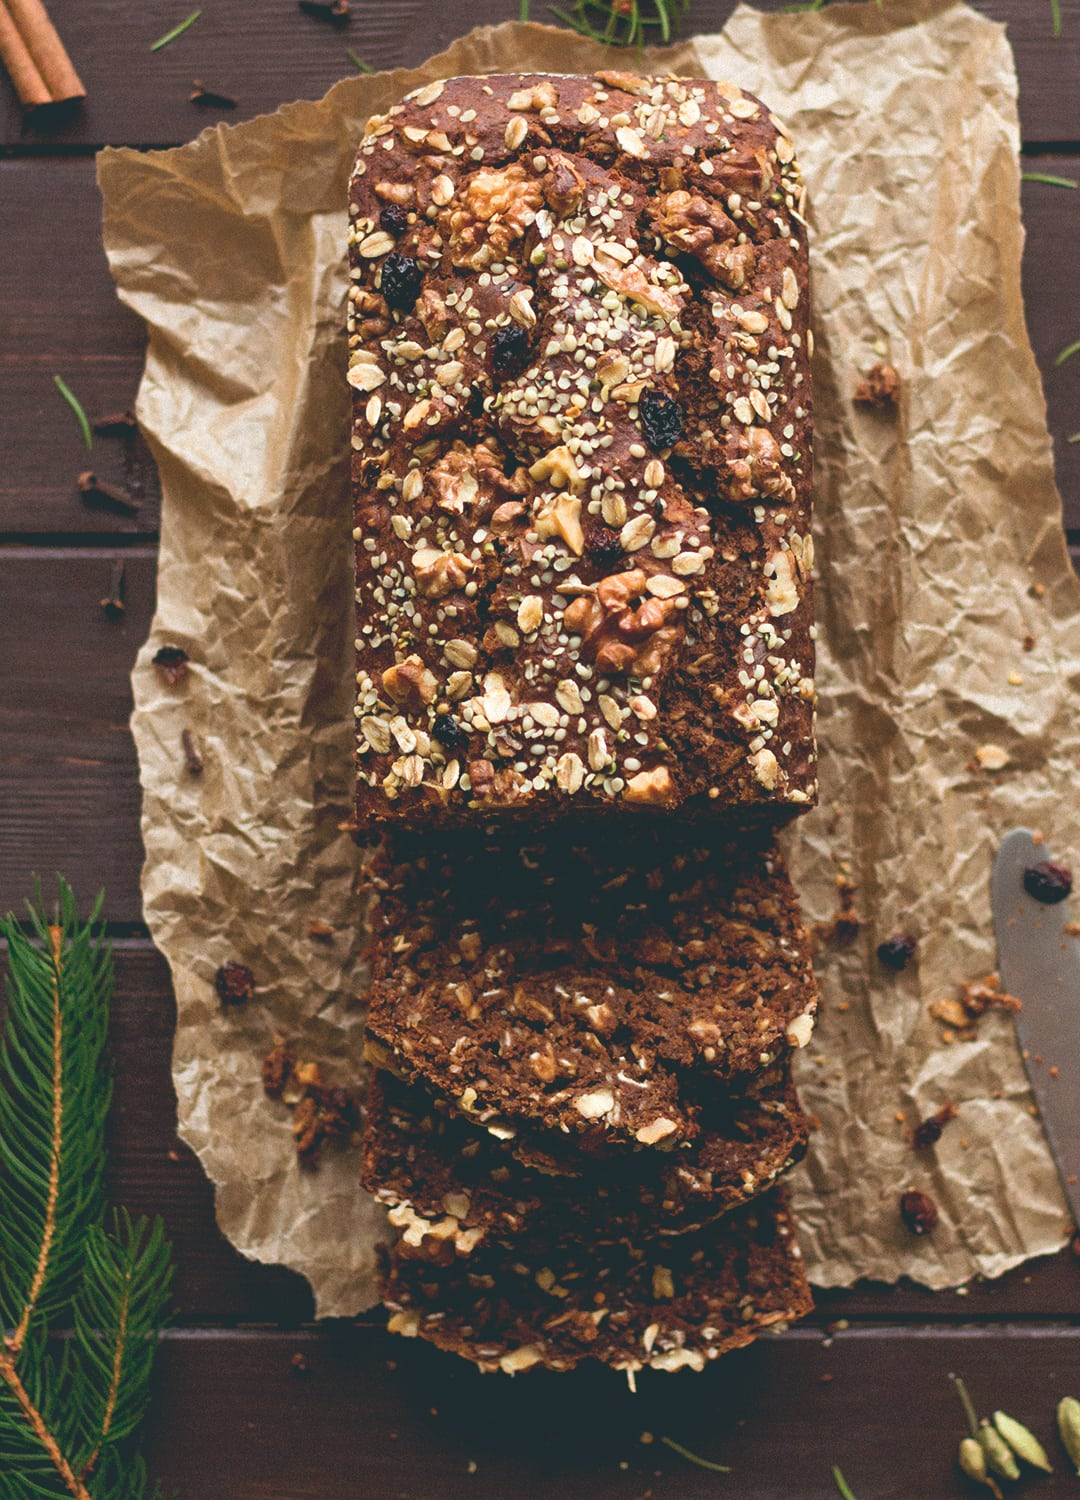 12 Christmas Recipes You Need to Make This Year: Gingerbread Banana Bread (vegan, GF) - the most delicious, comforting, healthy, and festive banana bread! I love this recipe. It's the perfect breakfast for Christmas Day morning. | thehealthfulideas.com